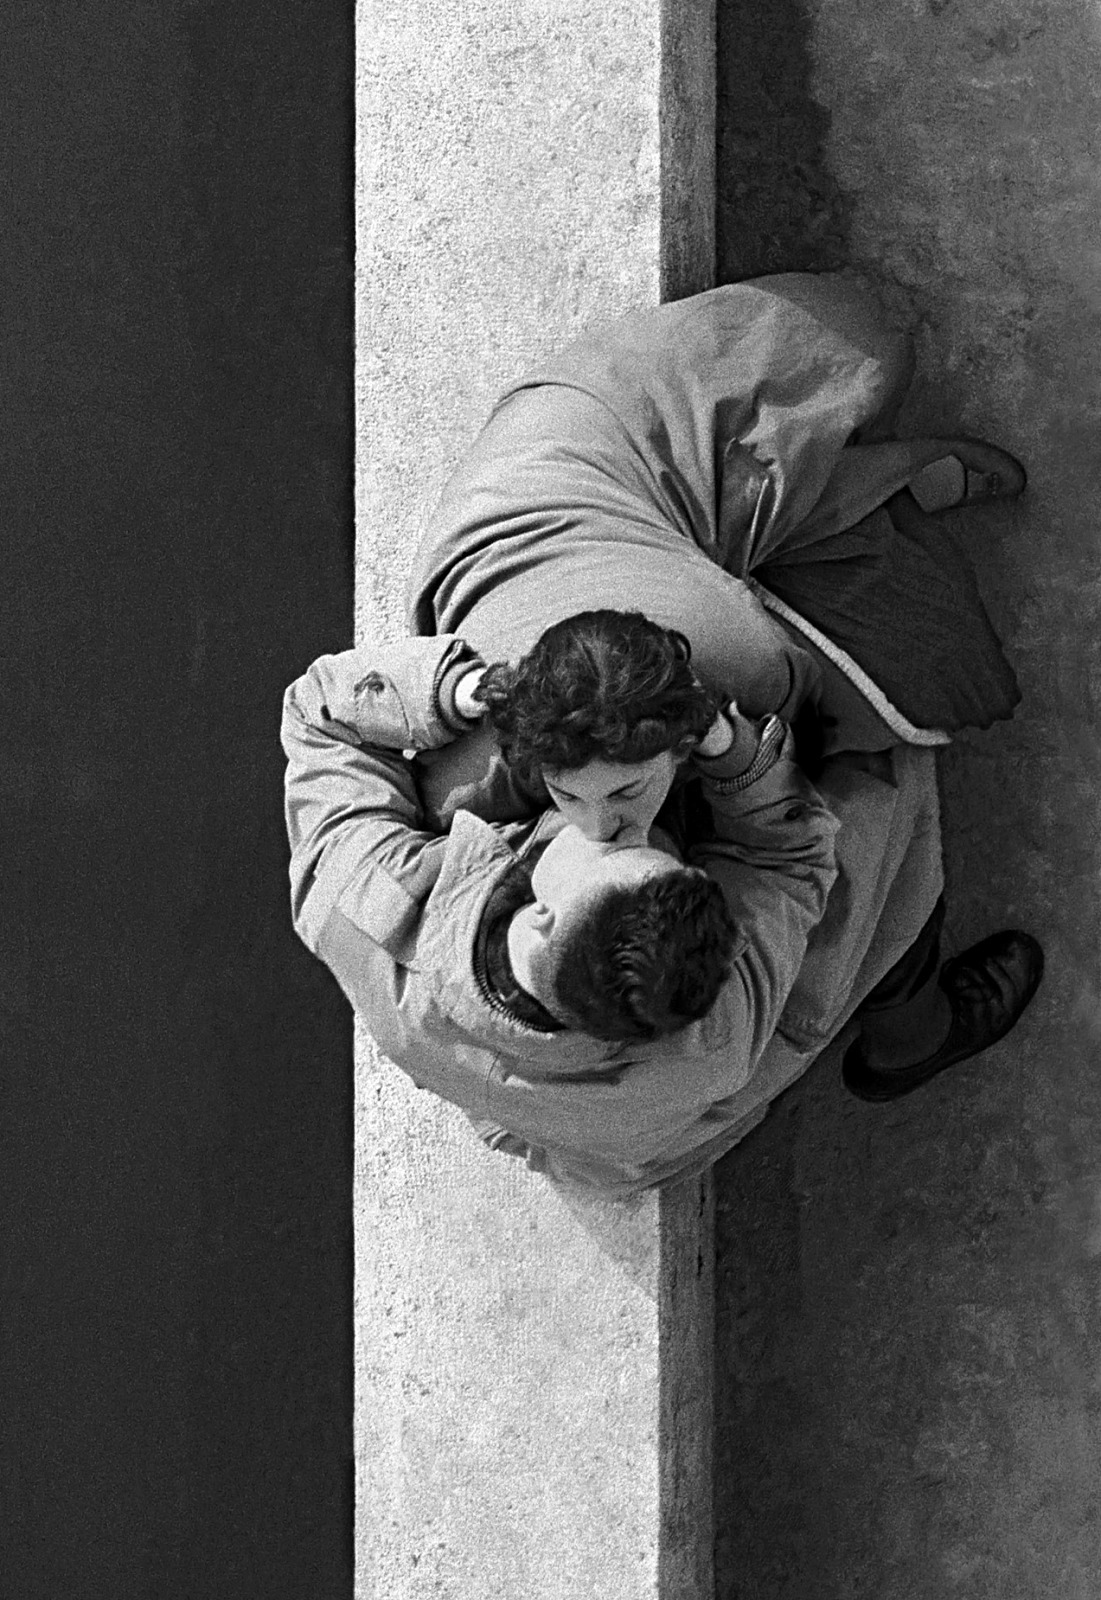 Les amoureux du Quai du Louvre, Paris, 1955, photo by Frank Horvat